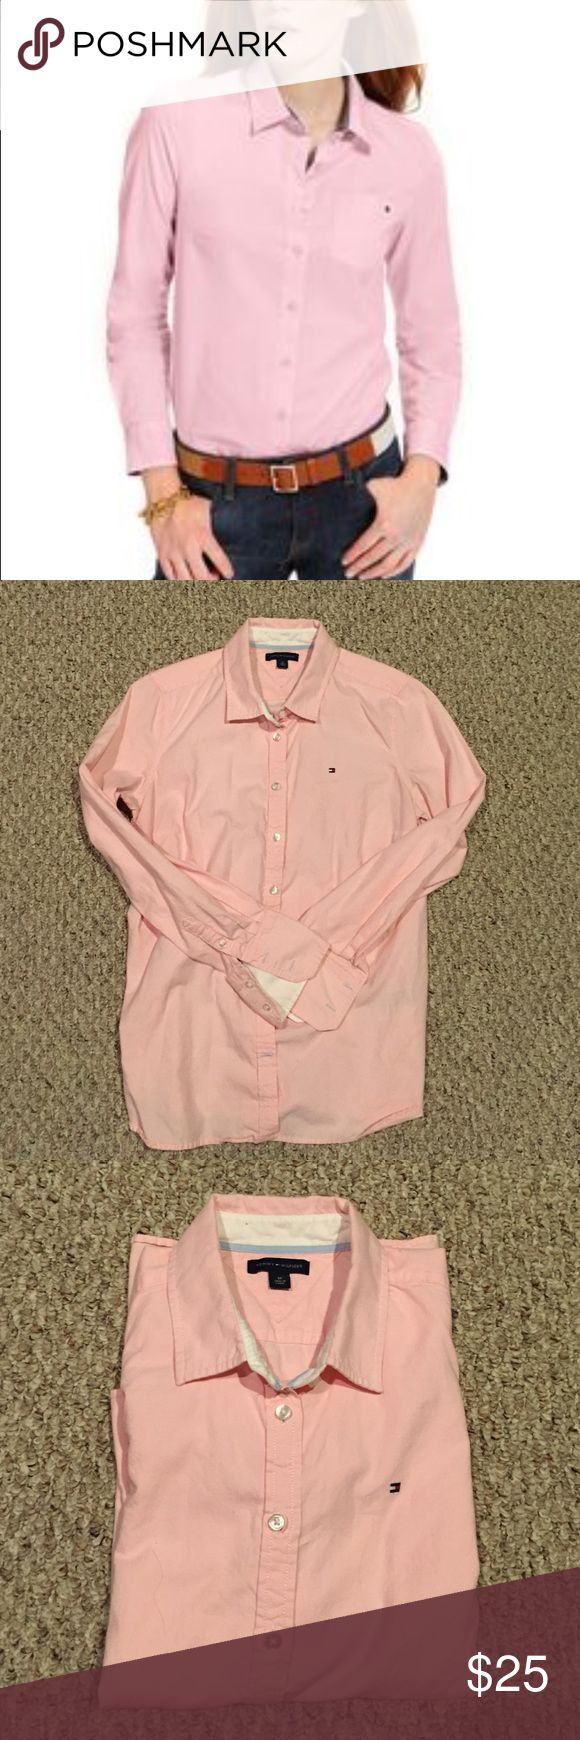 REDUCED! Timeless - Classic Women's Oxford Shirt Classic oxford. Perfect for any occasion. This TH shirt is in excellent condition.  Details: cotton, machine washable, button front closures. A must have :) Tommy Hilfiger Tops Button Down Shirts